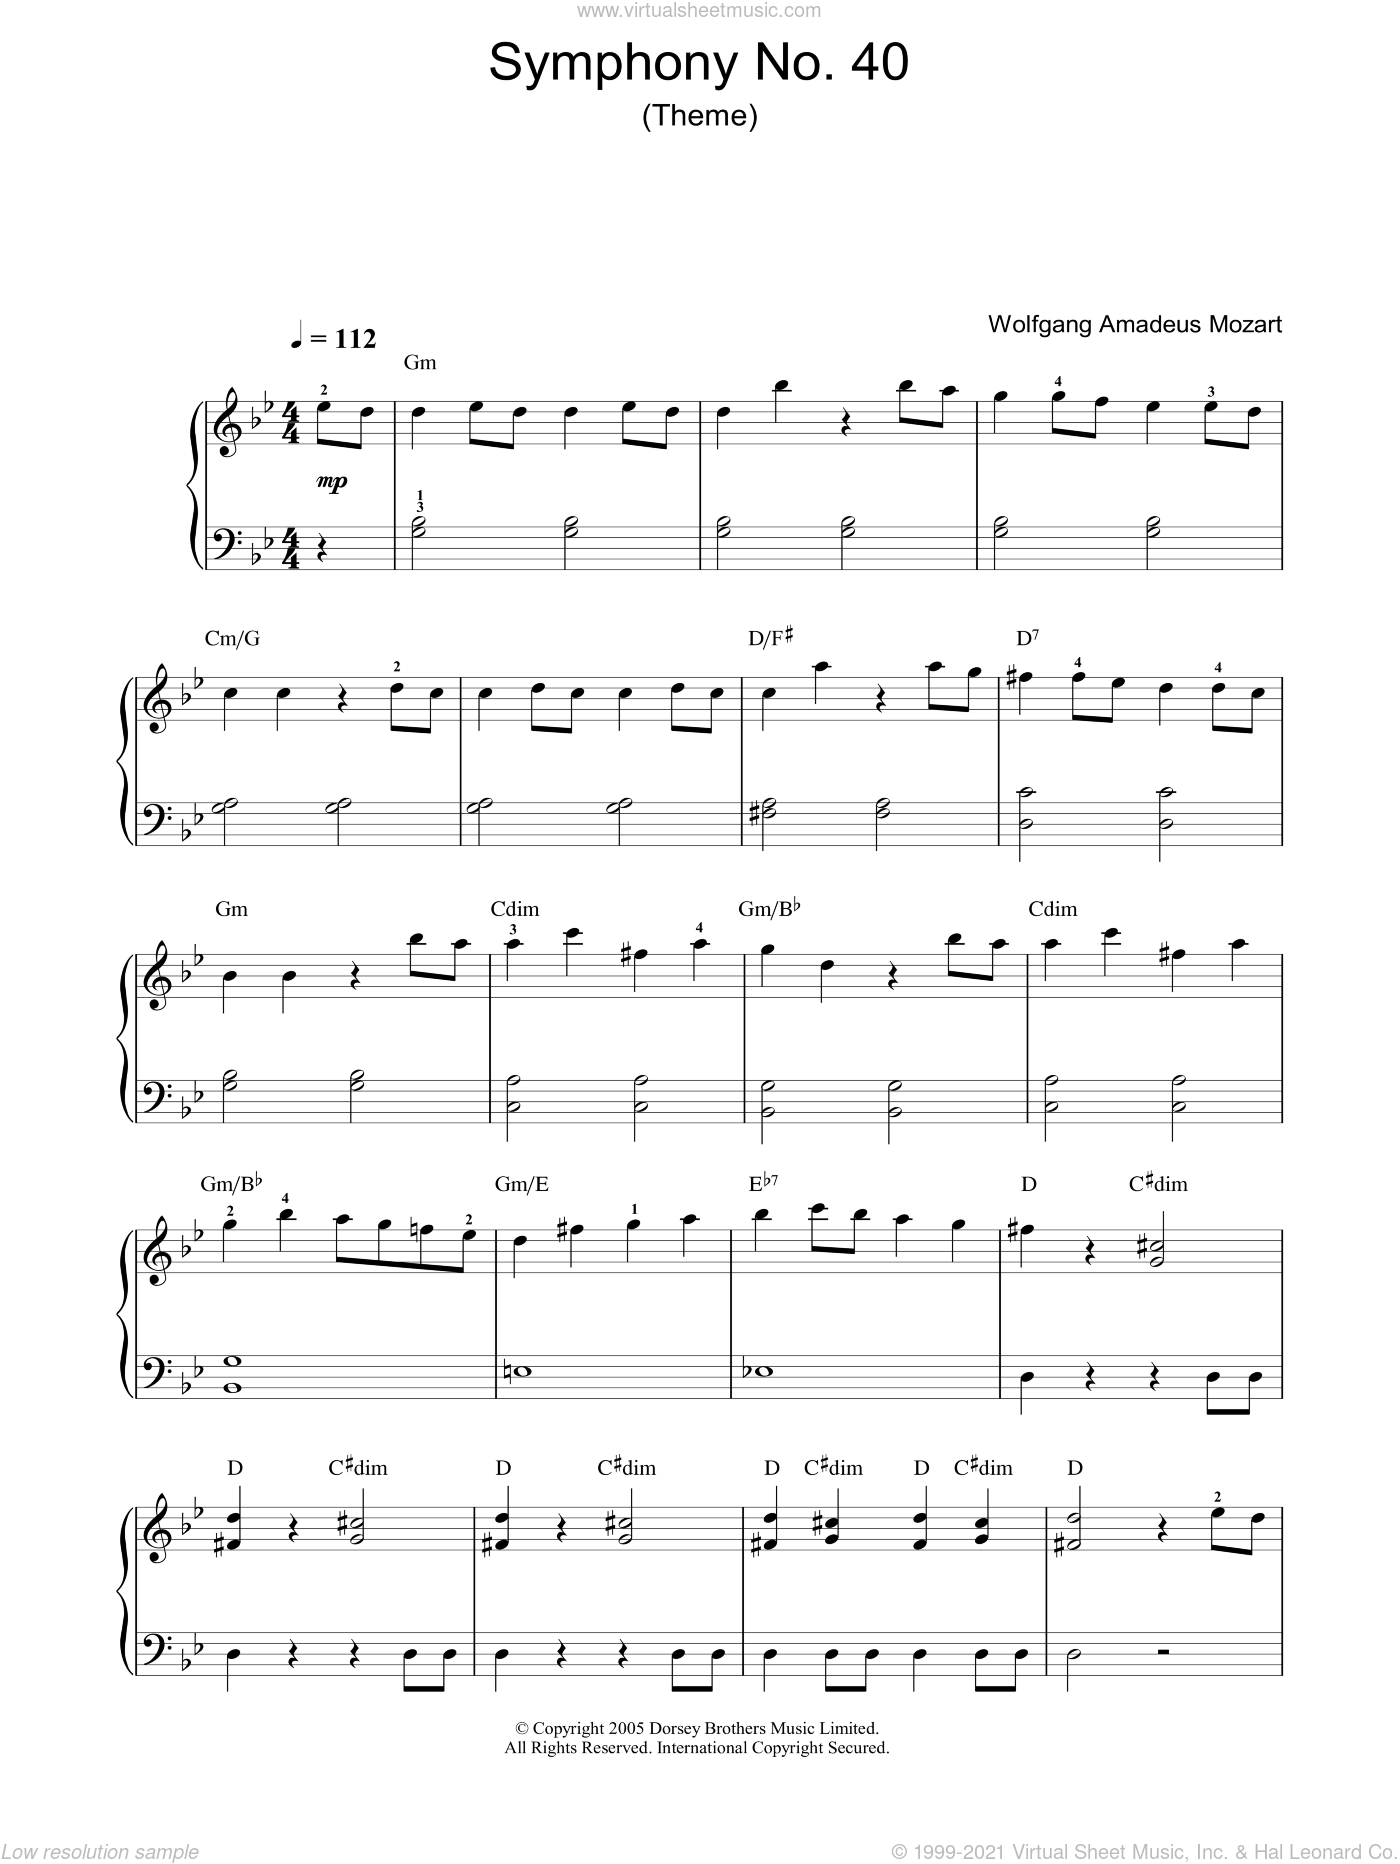 Symphony No. 40 (Theme) sheet music for voice, piano or guitar by Wolfgang Amadeus Mozart, classical score, intermediate skill level